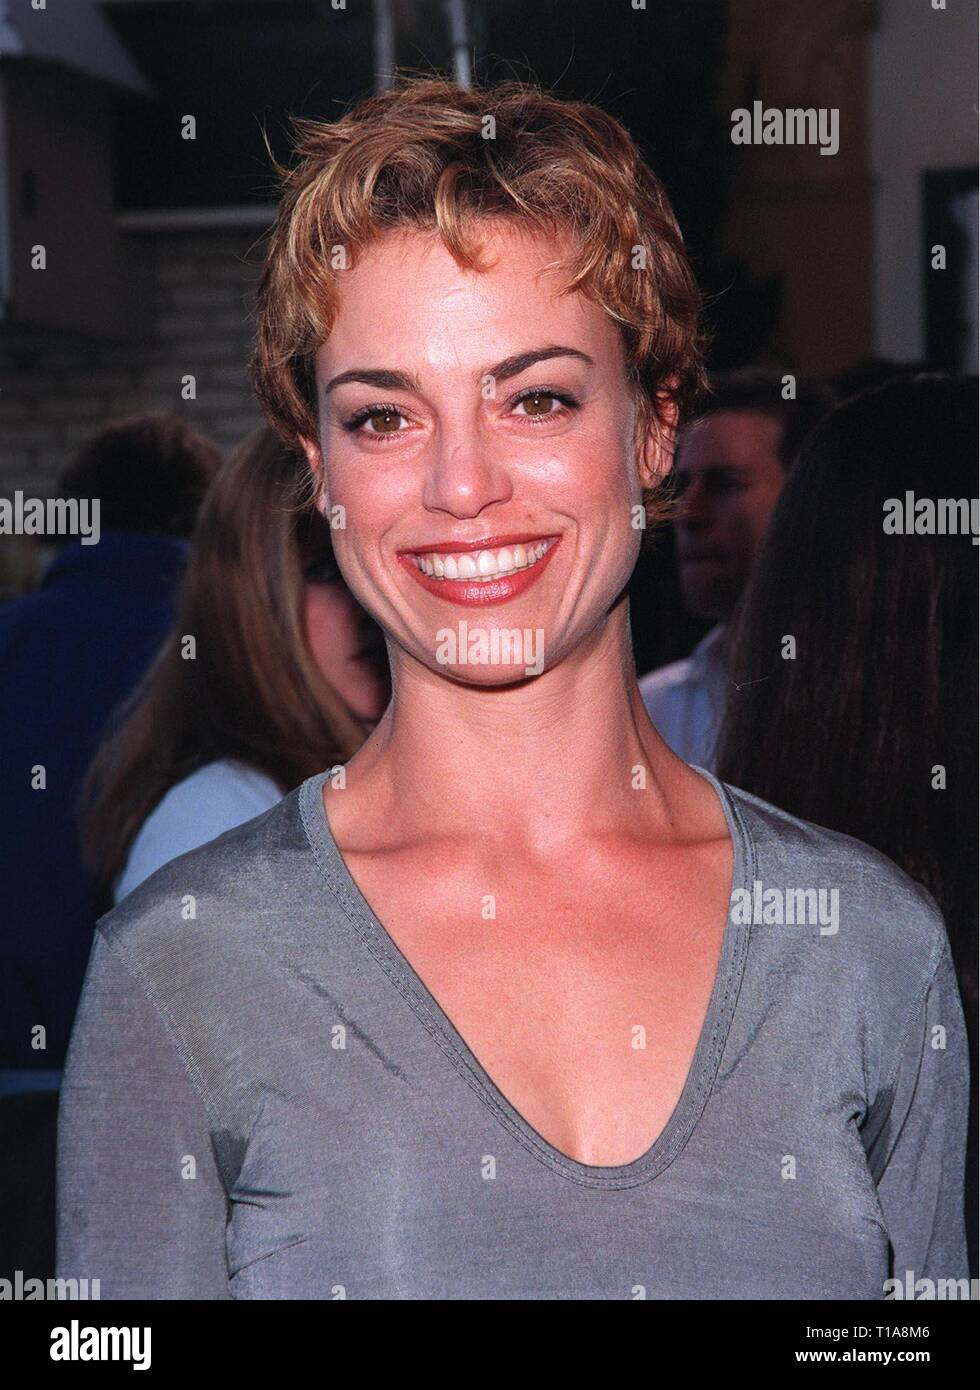 LOS ANGELES, CA - July 9, 1998: JENNIFER GRANT, daughter of the late Cary Grant, at the world premiere, in Los Angeles, of 'There's Something About Mary.' - Stock Image